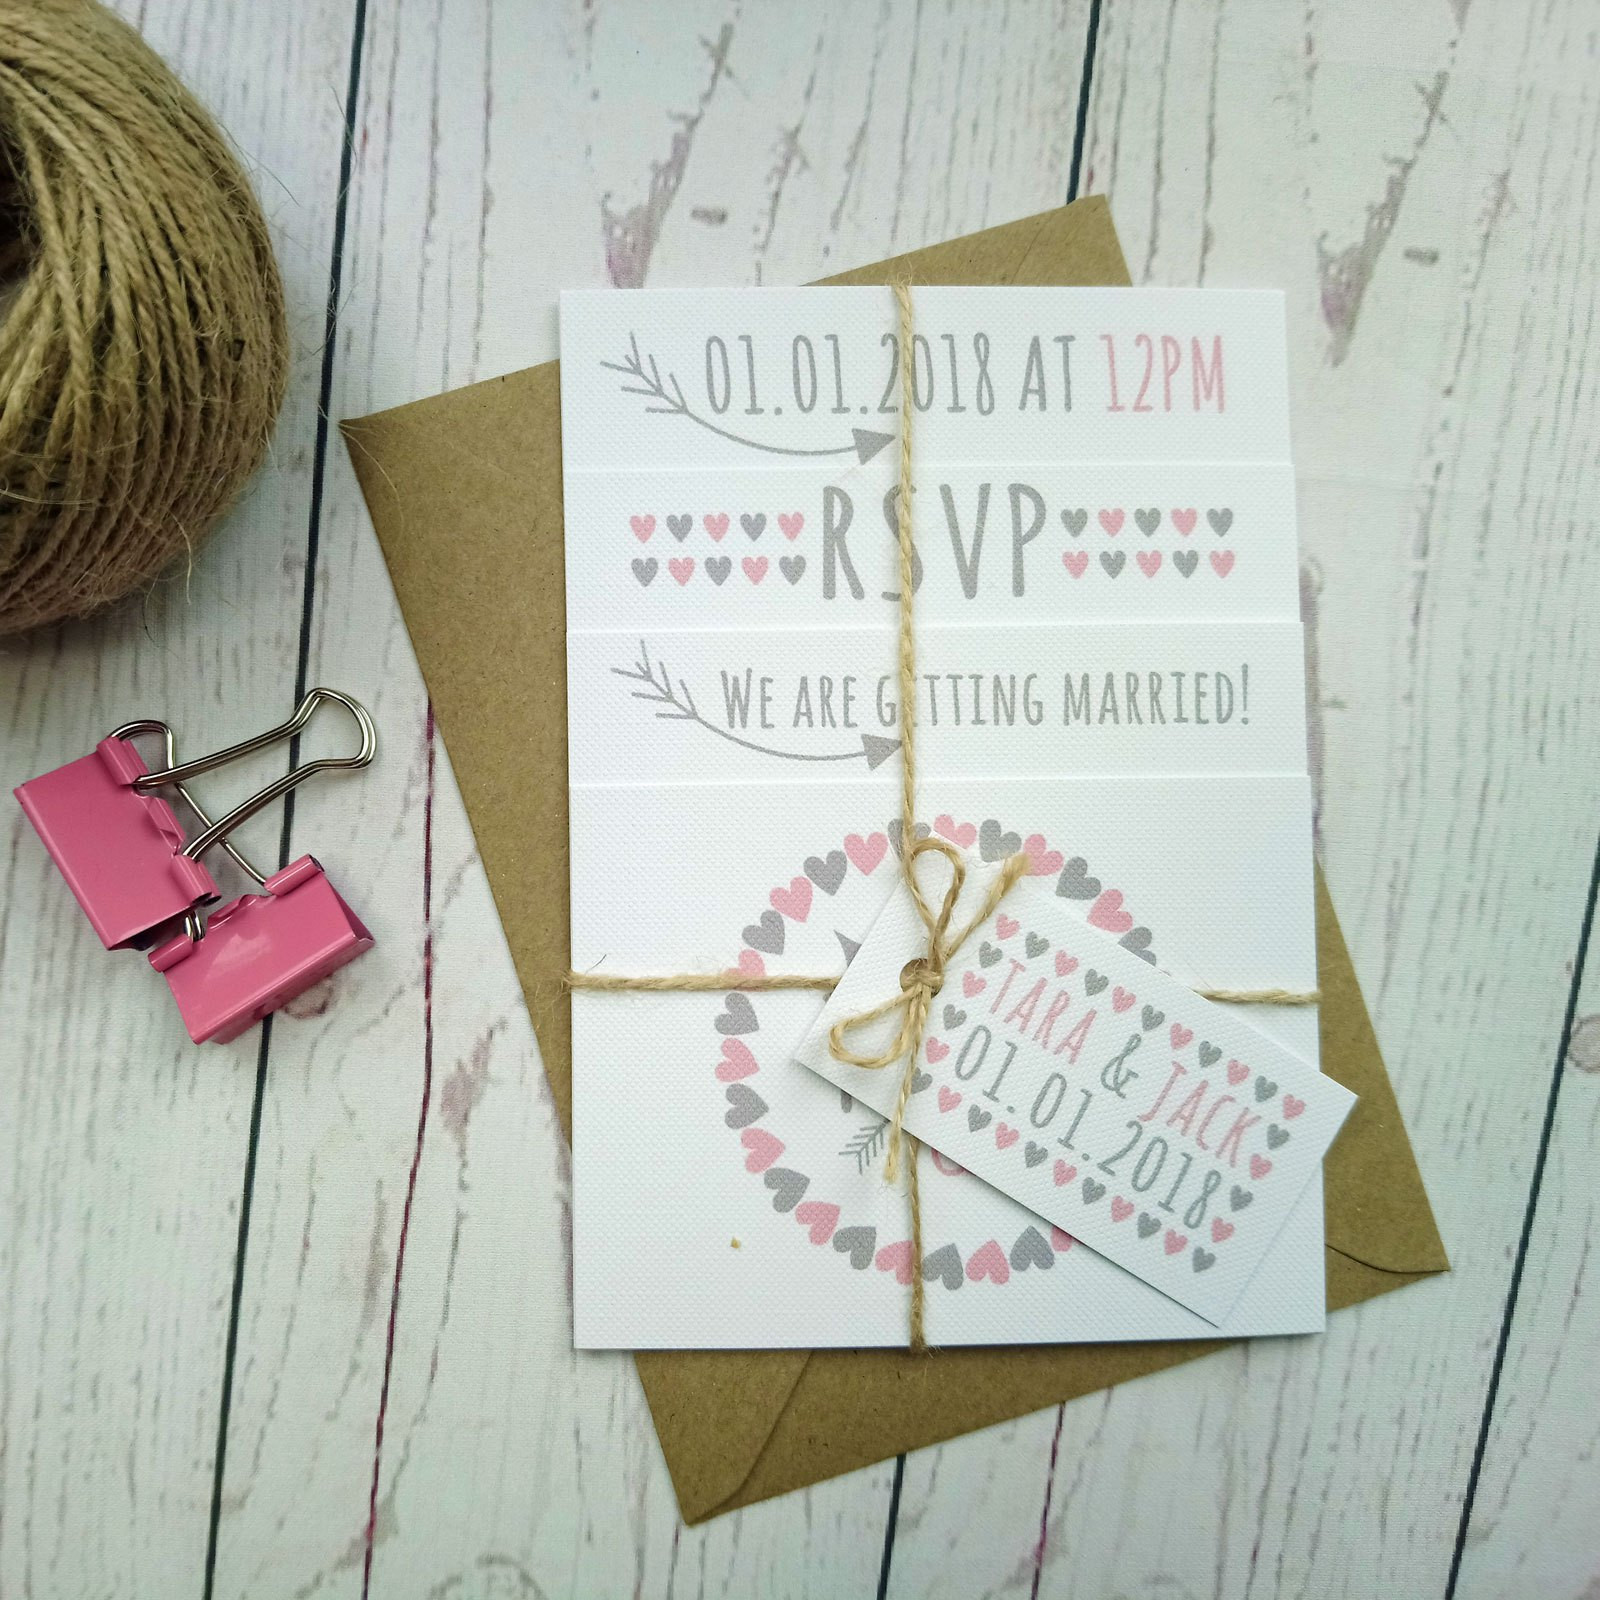 Cheap Wedding Invitations | Top Tips - WeddingPlanner.co.uk